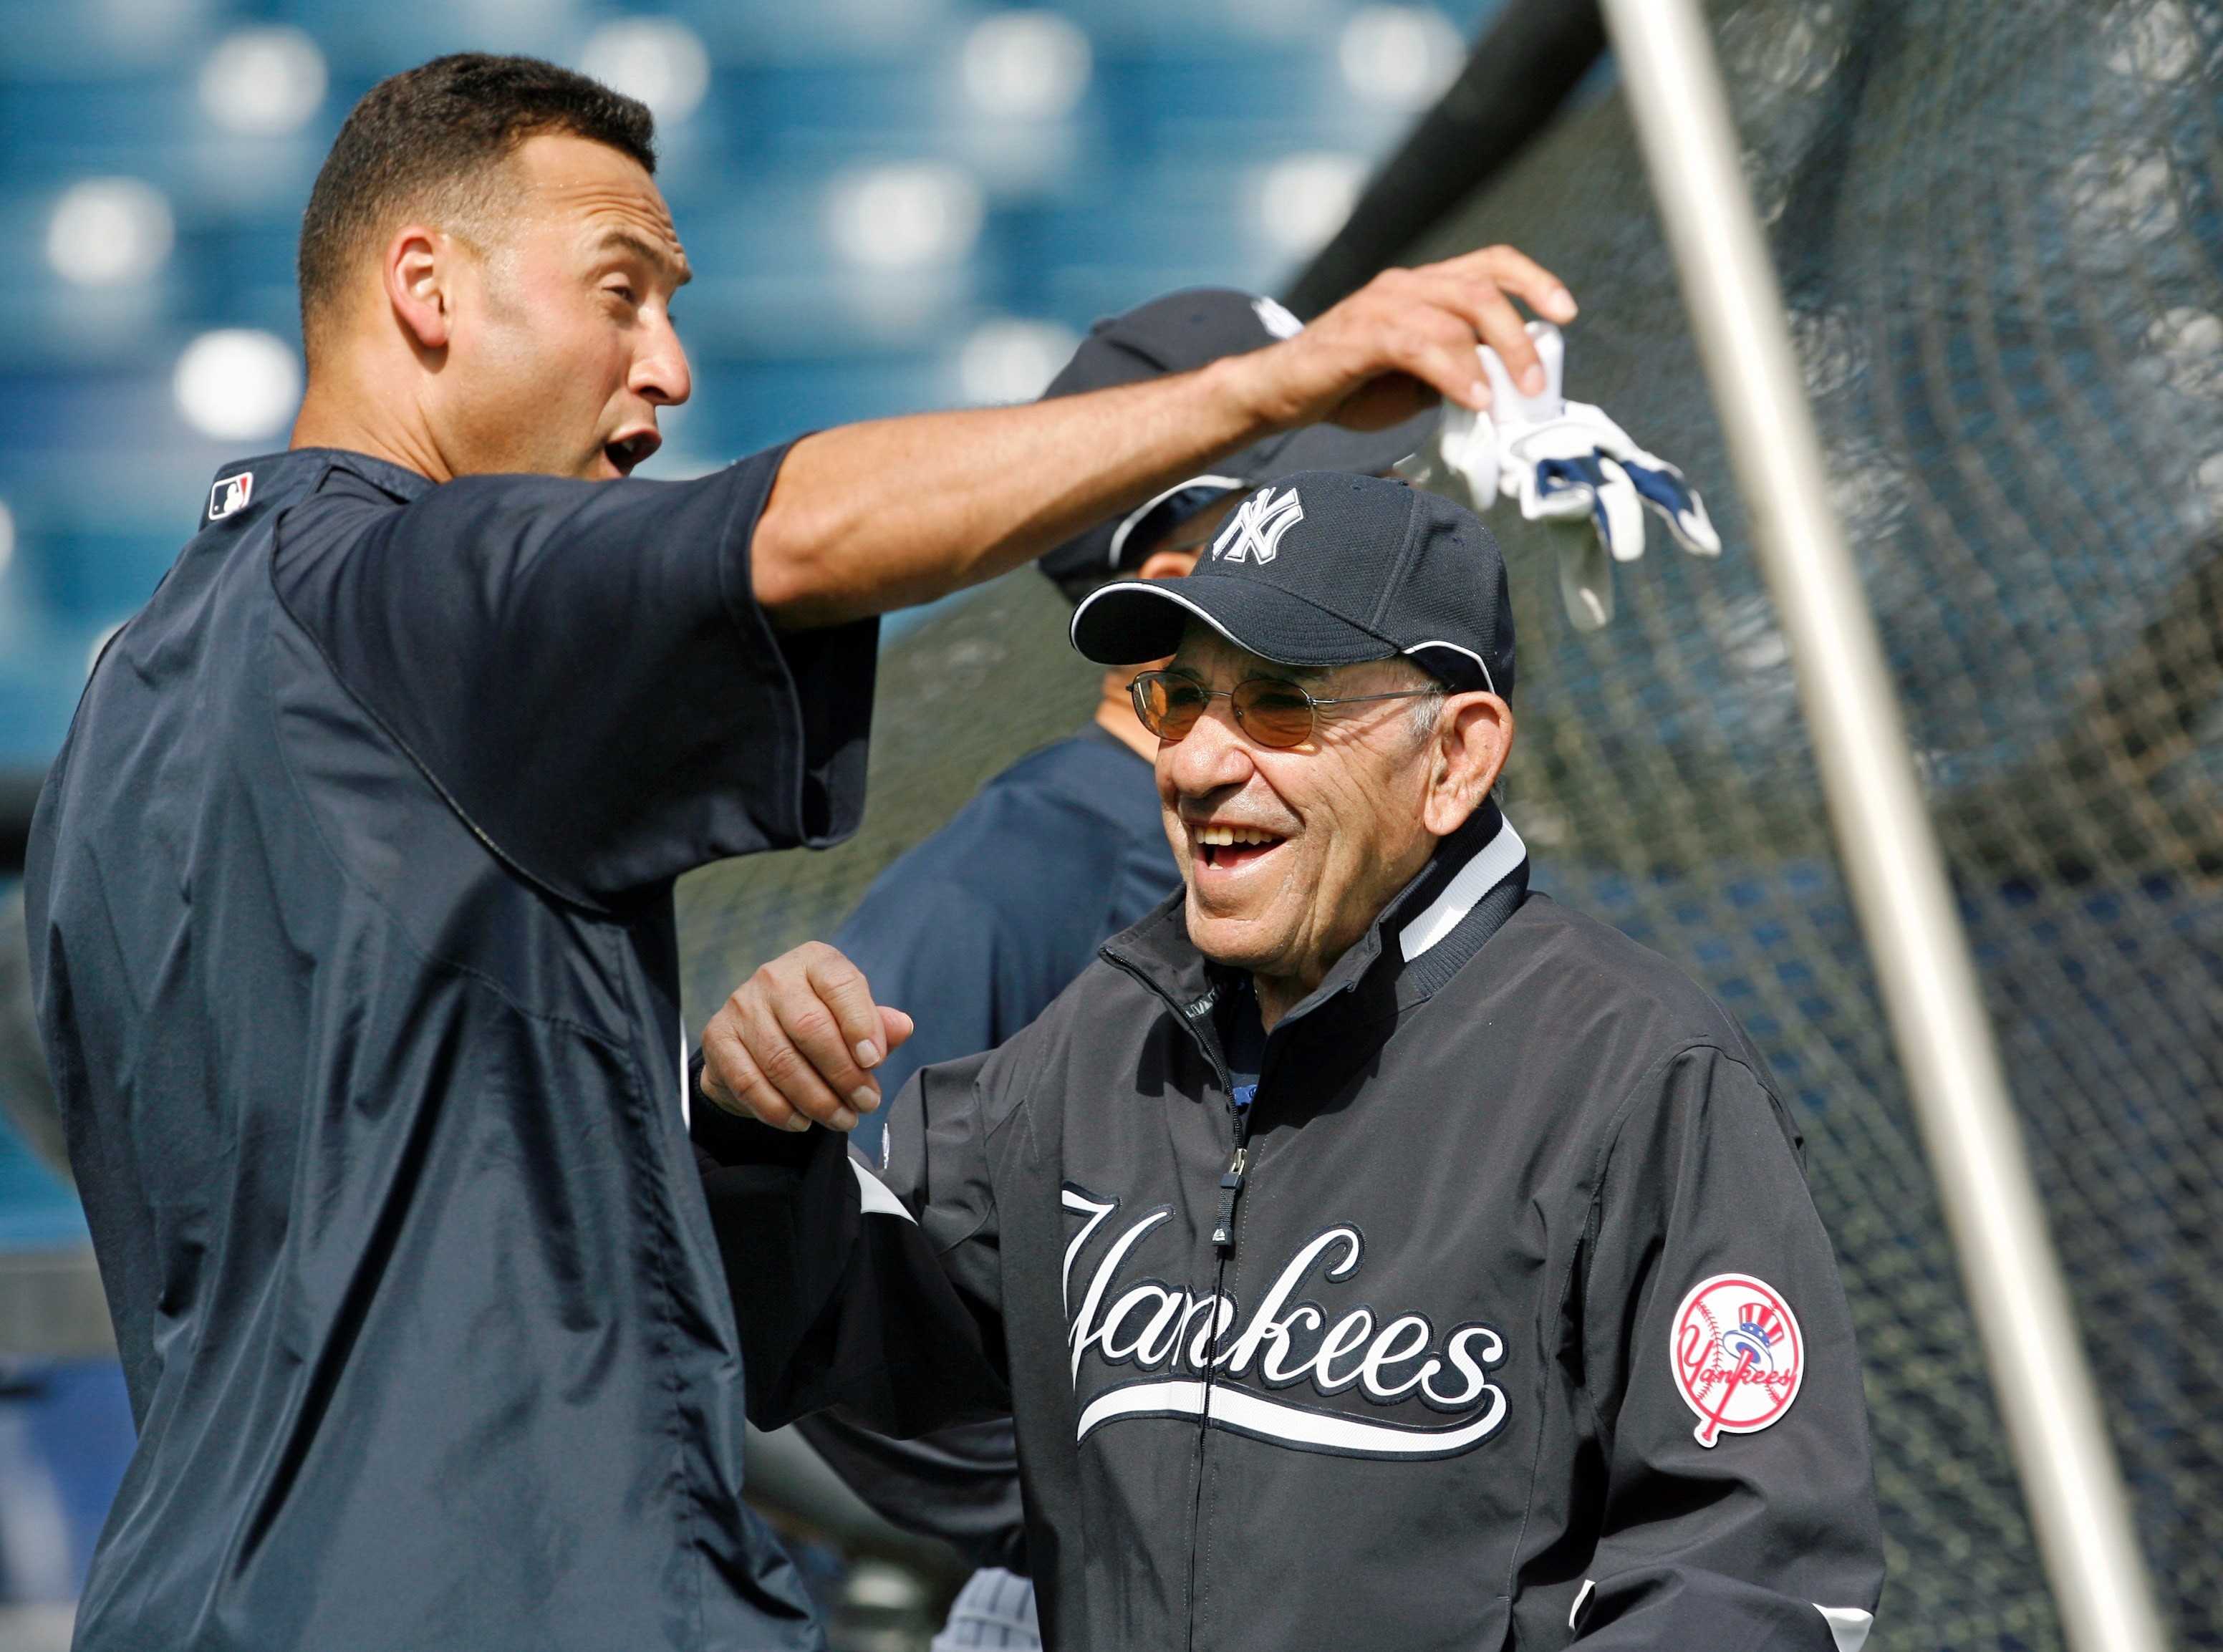 This March 7, 2008, file photo shows New York Yankees shortstop Derek Jeter, left, and Yogi Berra clowning around by the batting cage before the Yankees spring training baseball game against the Houston Astros at Legends Field in Tampa.